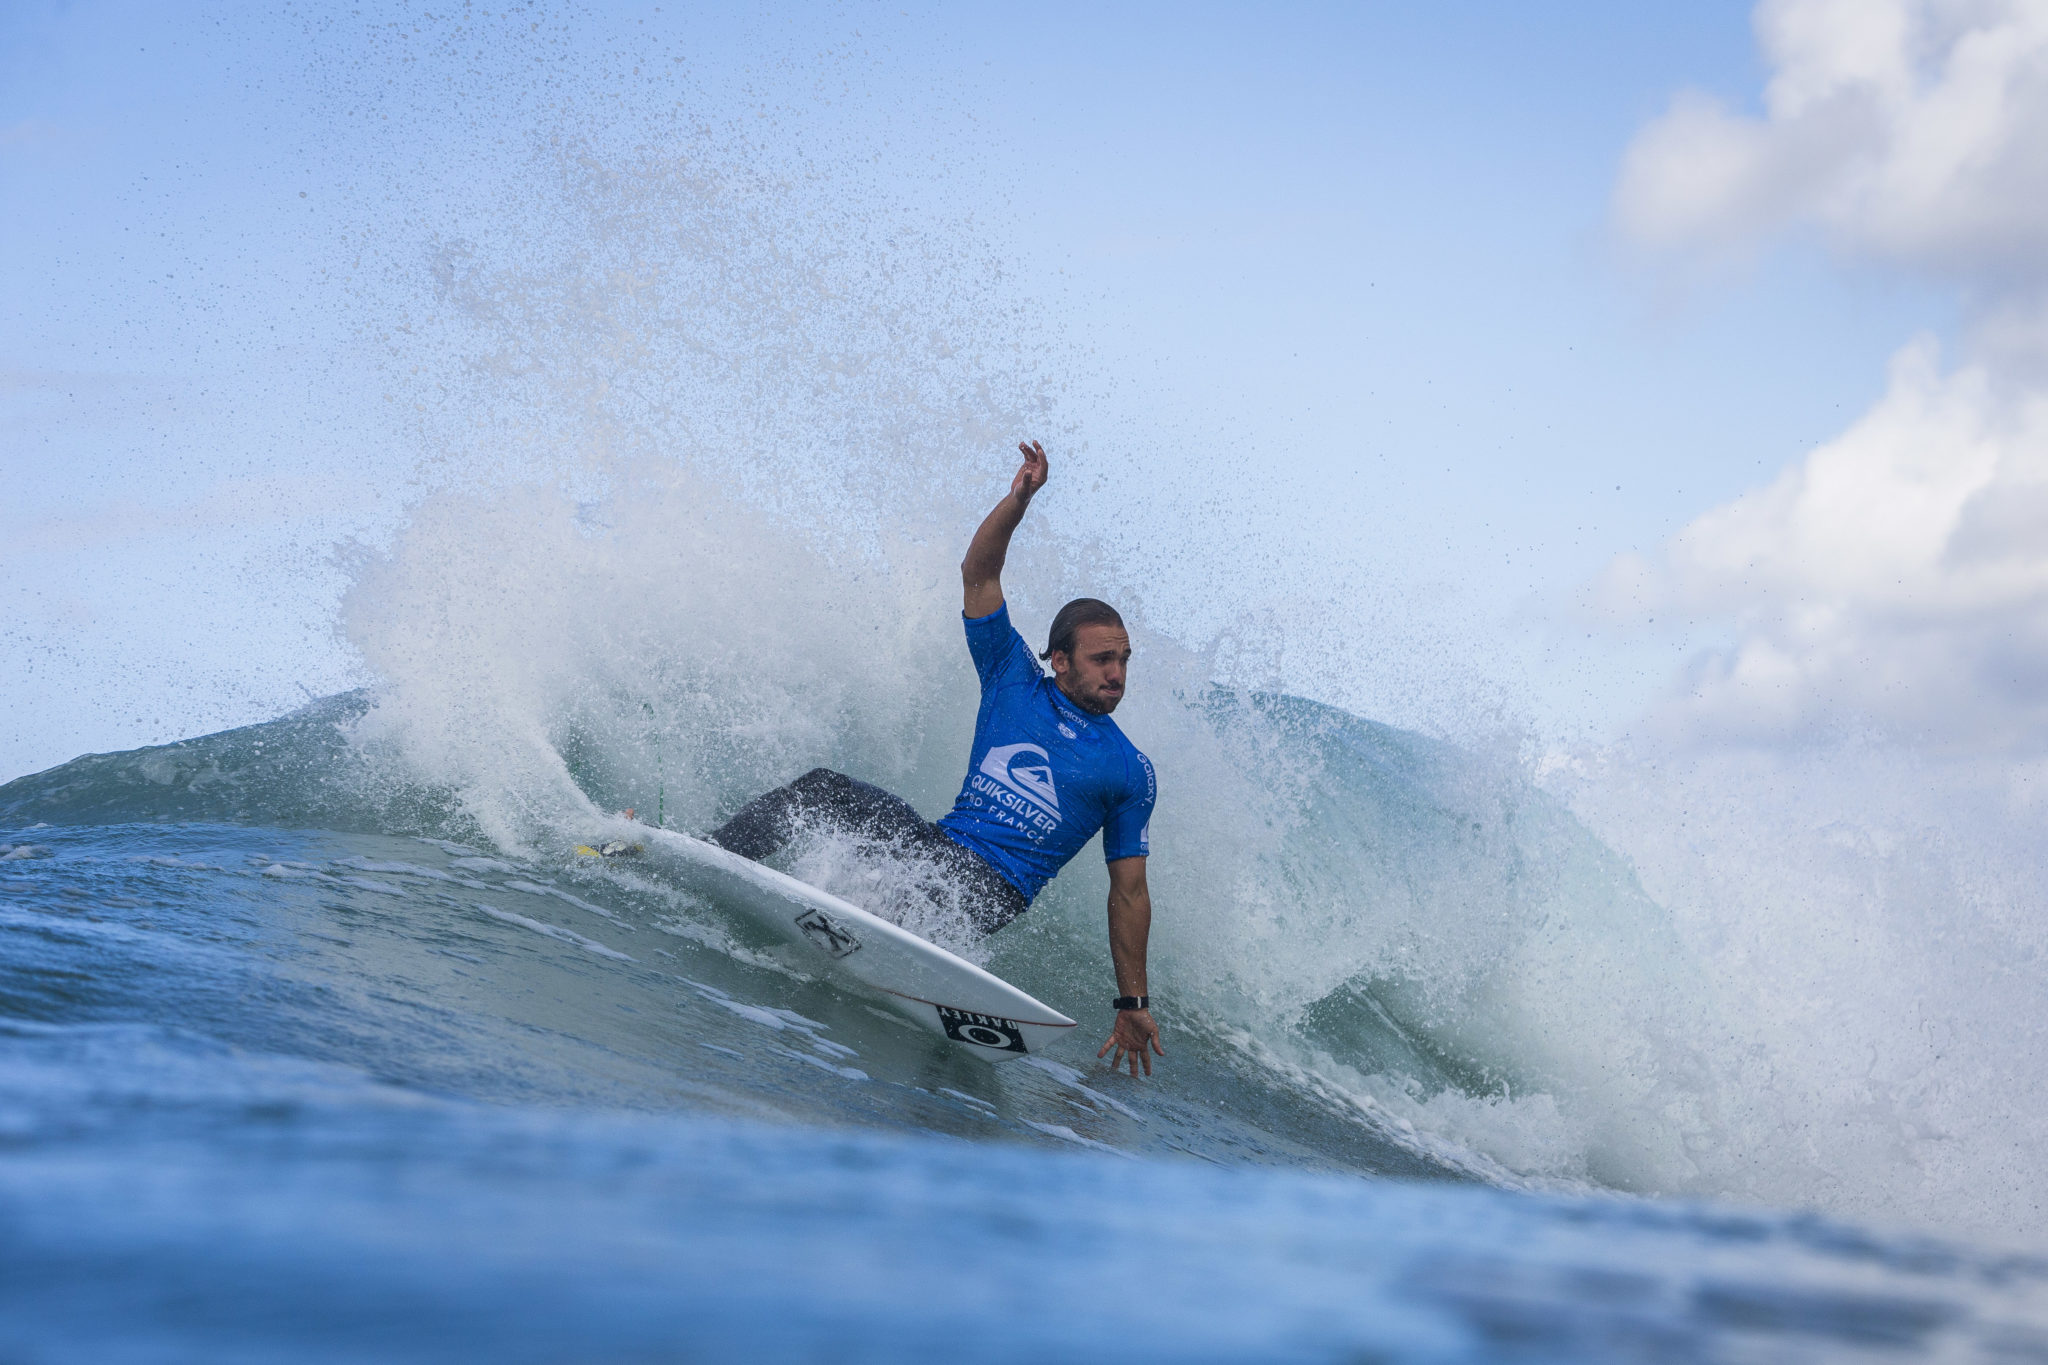 Caio Ibelli (BRA) Placed 1 st in   Heat 10 of Round One at Quiksilver Pro France 16